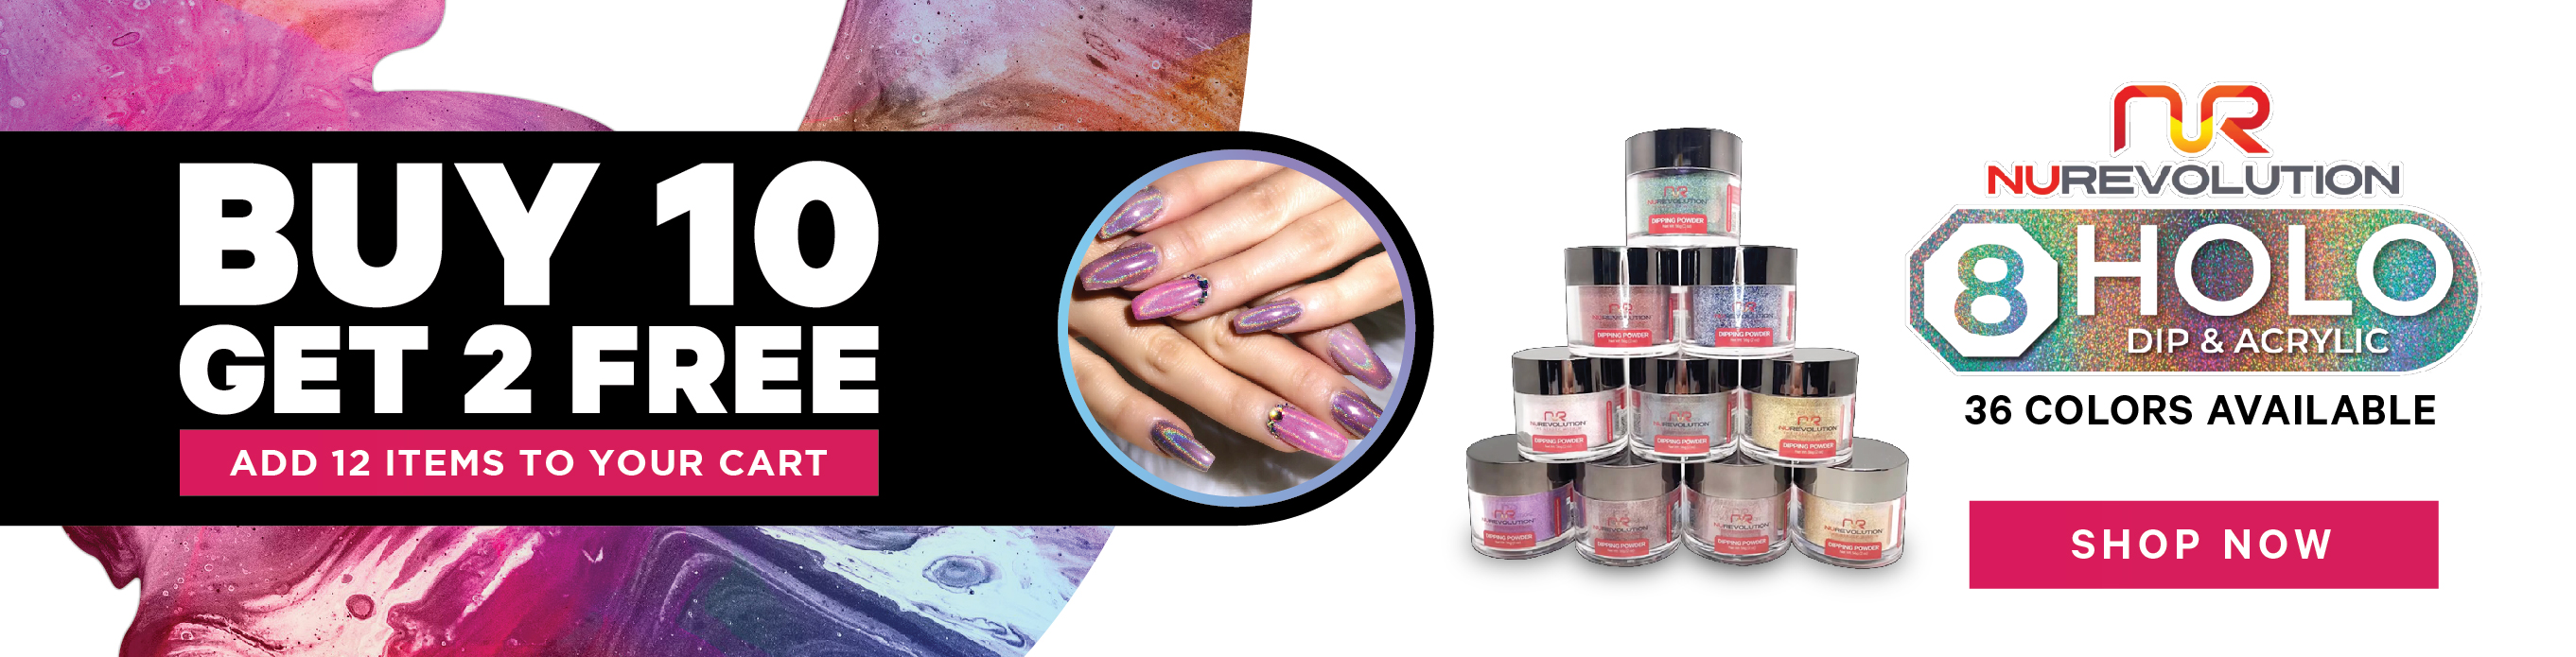 New Collections - NuRevolution - 8 Holo Dip Acrylic - Allure Nail Supply